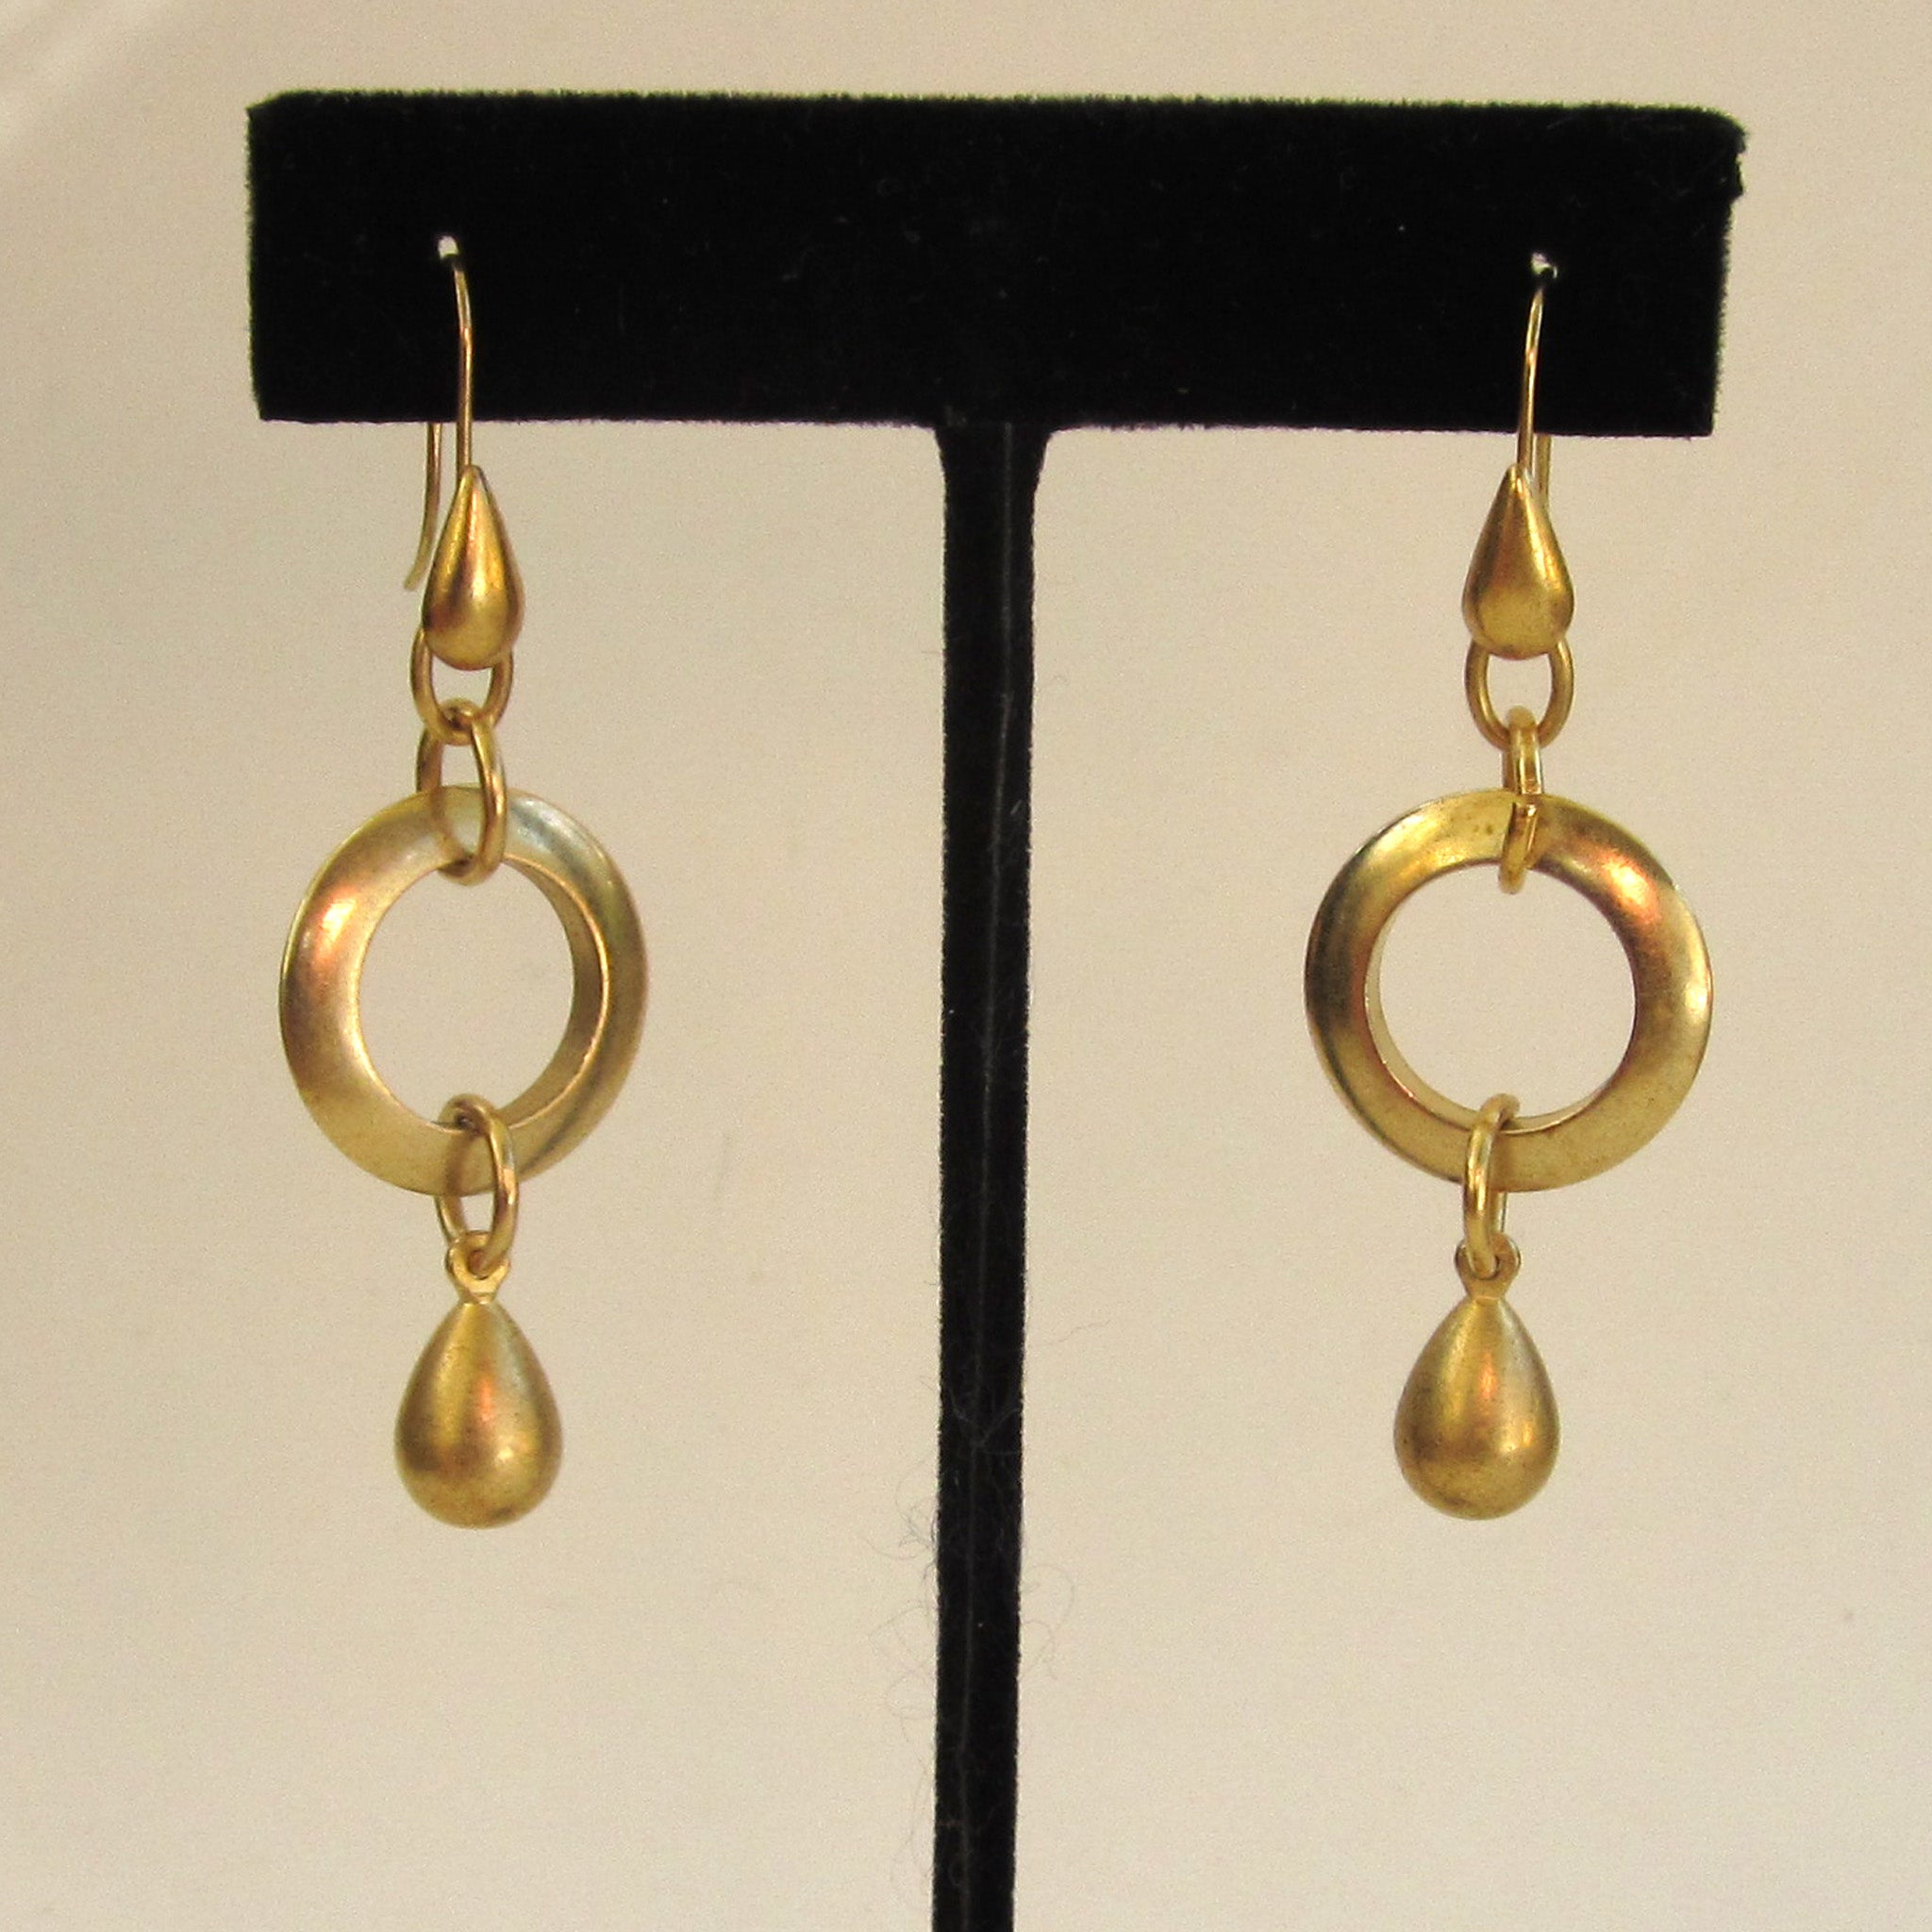 Circa 1980s Gold-tone Hoop Dangle Earrings